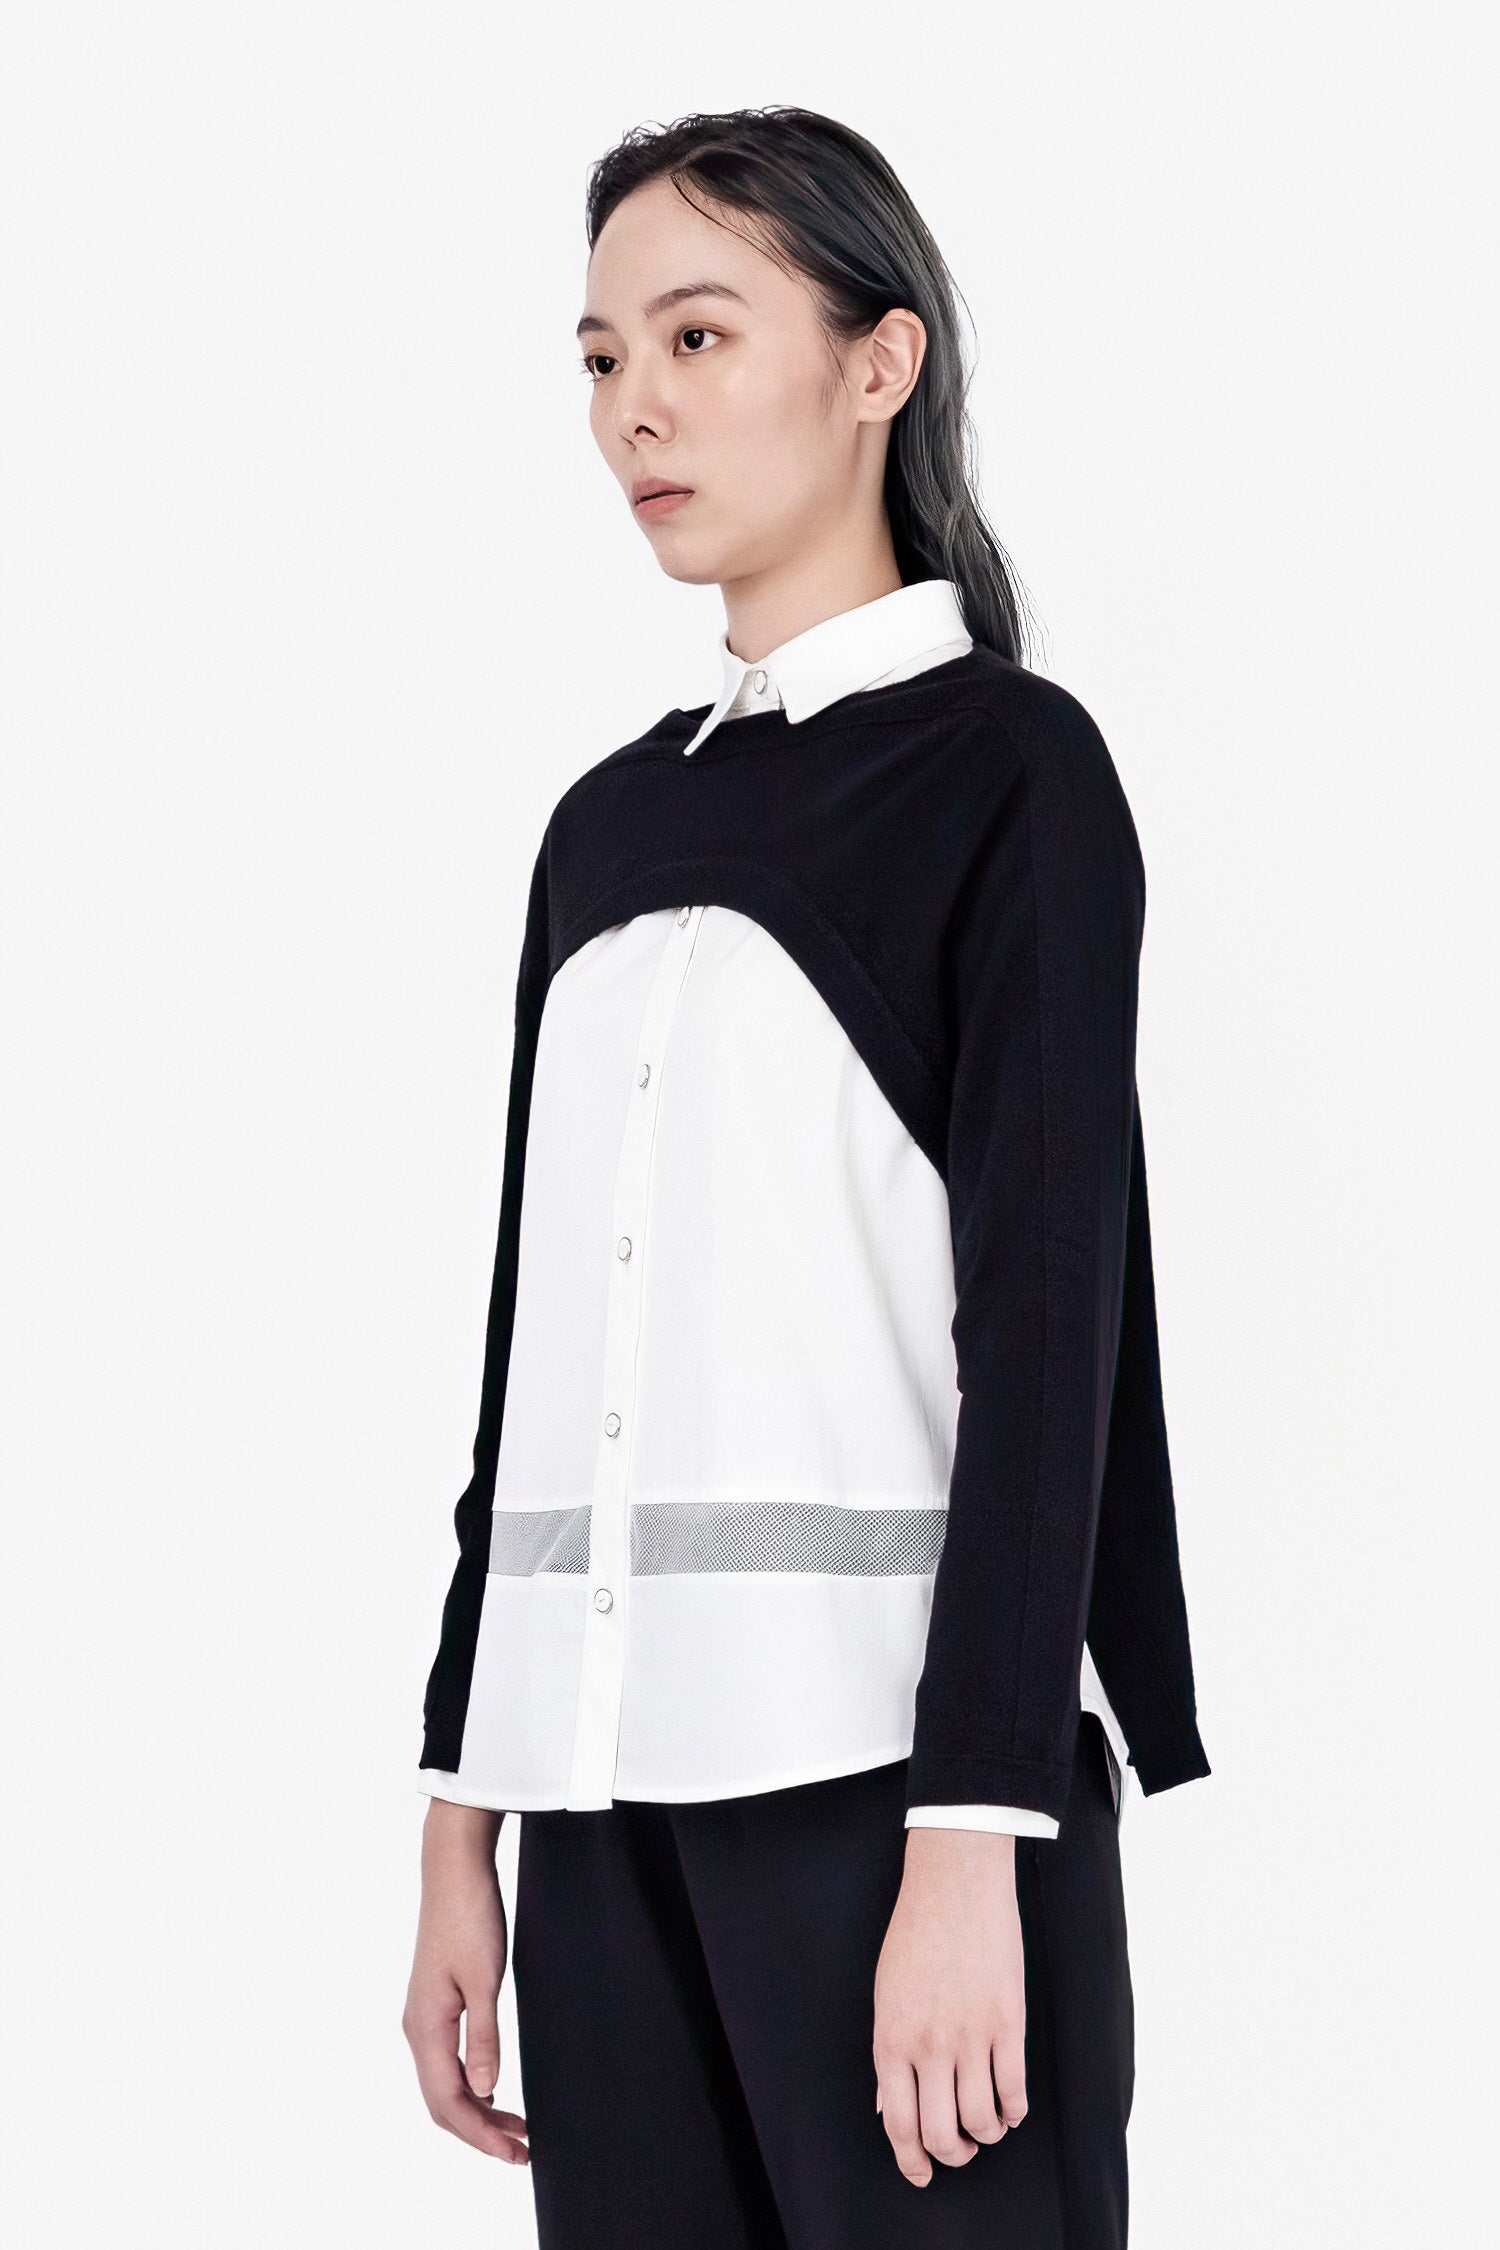 SEANNUNG - 長袖披風罩衫 Asymmetric Long Sleeve Jumper - Woman